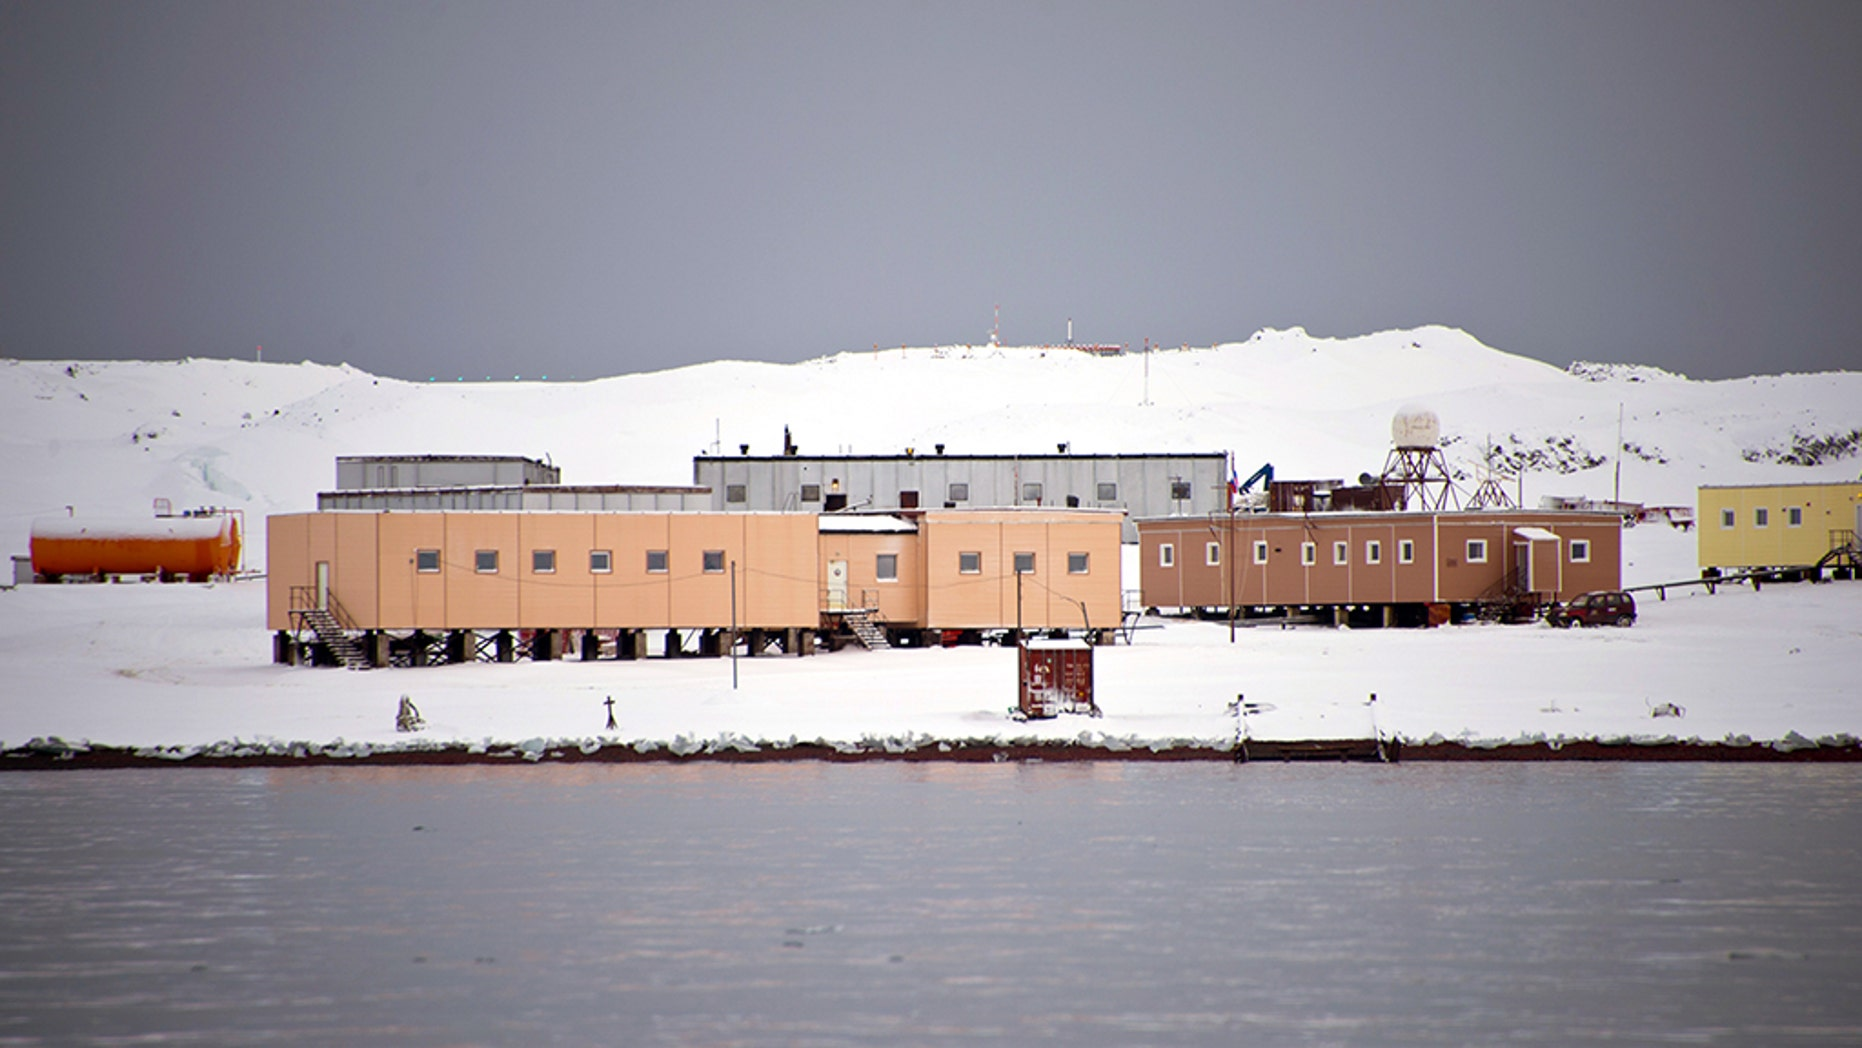 A researcher at the Russian Bellingshausen Station in Antarctica's King George Island allegedly stabbed a colleague after an apparent emotionalbreakdown. (VANDERLEI ALMEIDA/AFP/Getty Images)